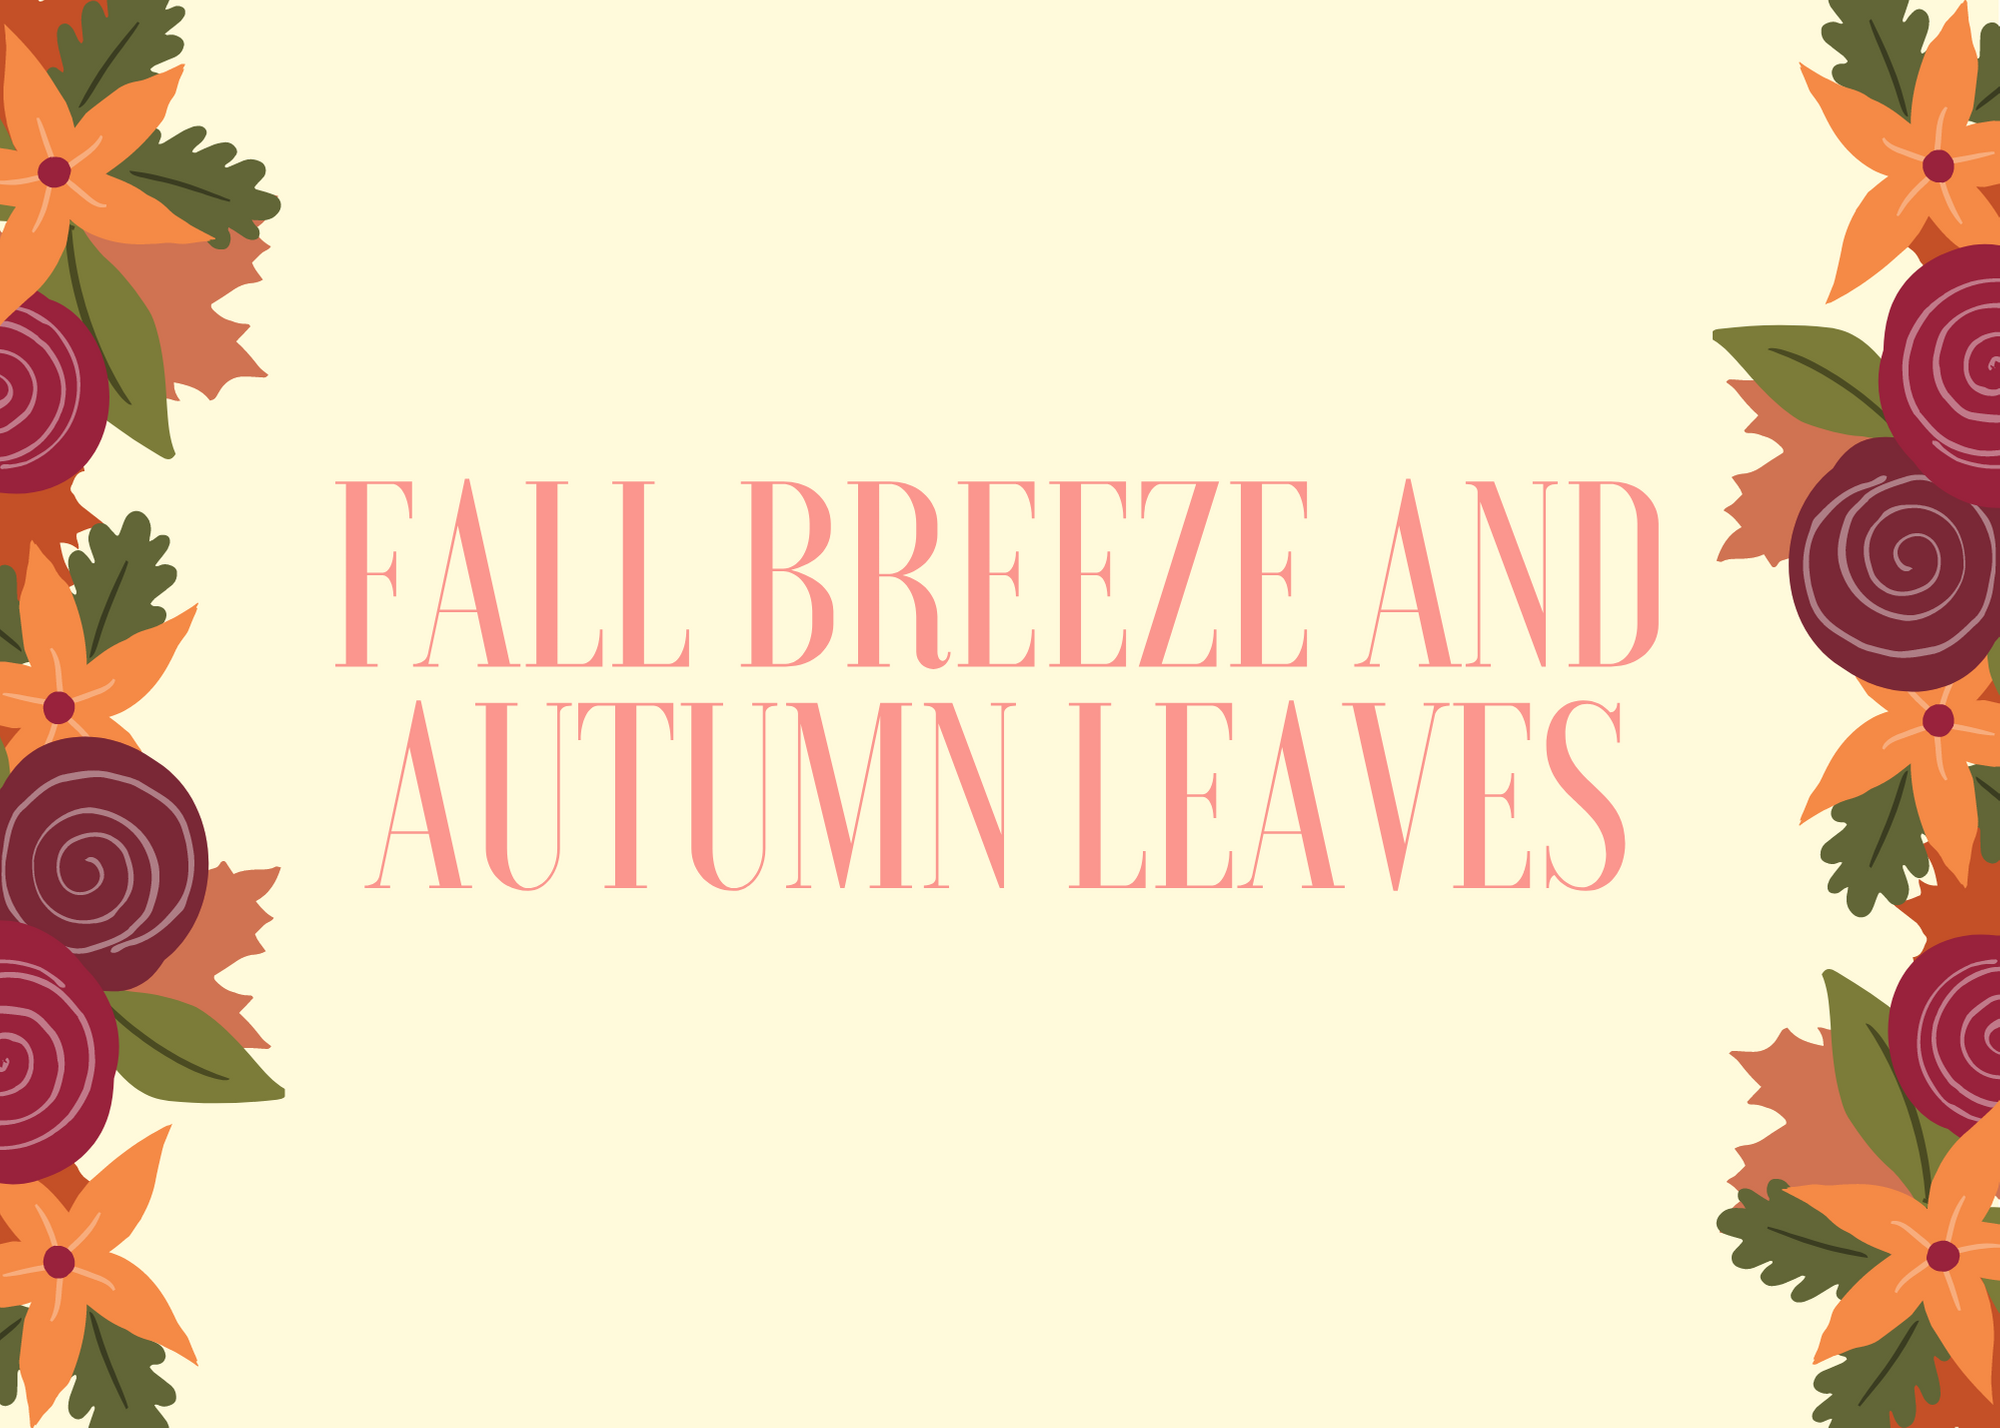 Funny Fall Instagram Caption About Fall Breeze